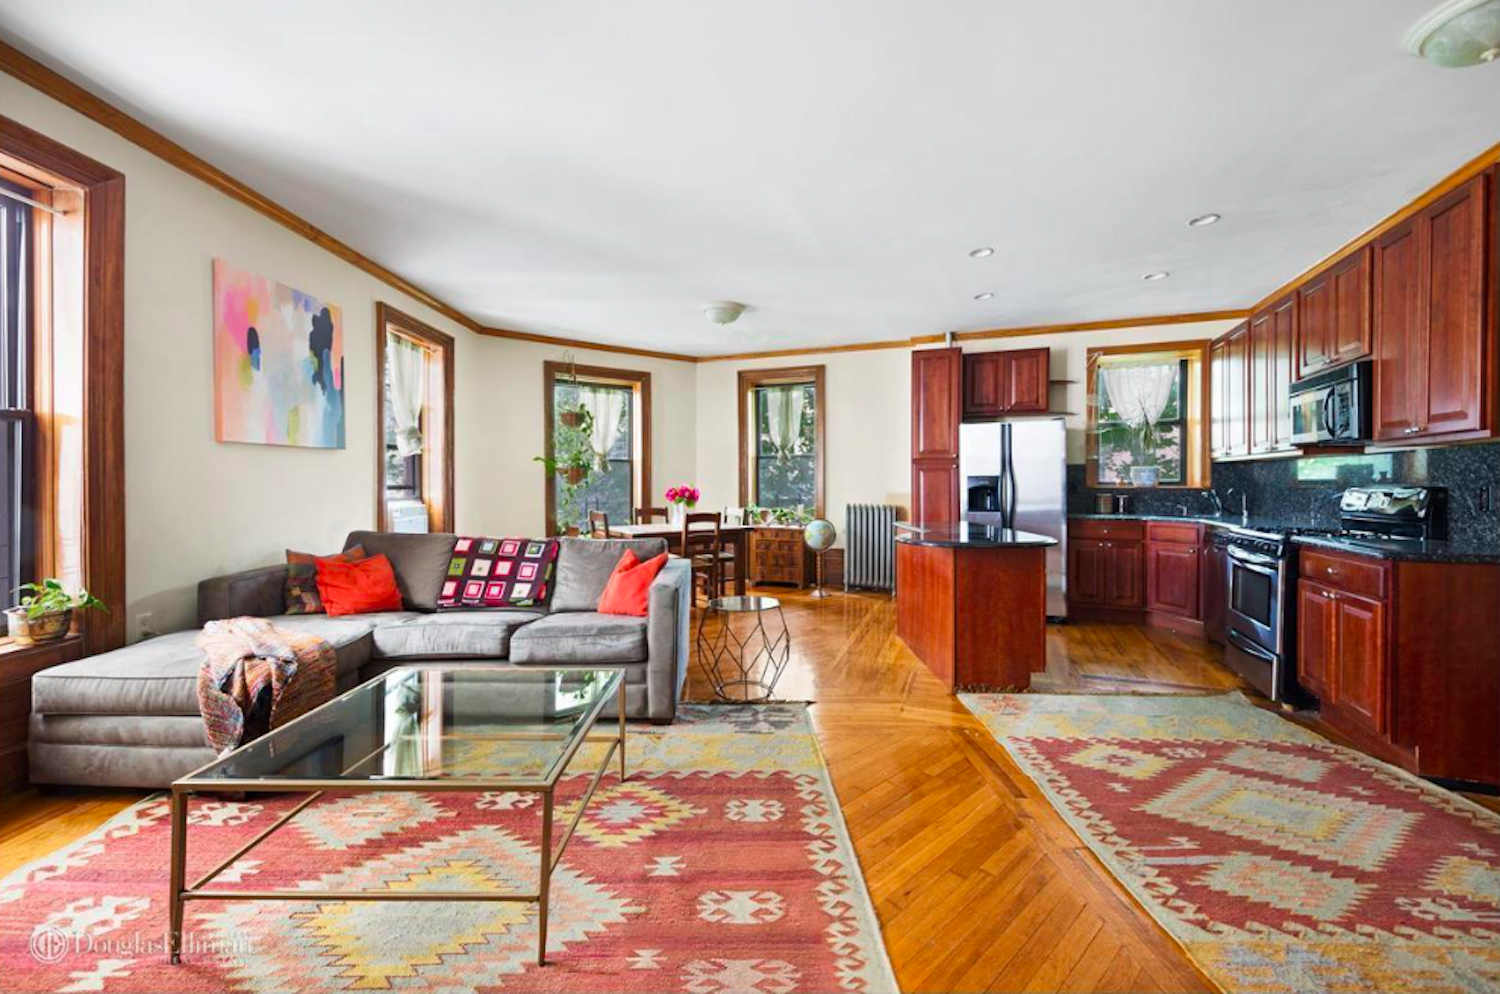 PROSPECT HEIGHTS, BROOKLYN - STAGING EDIT